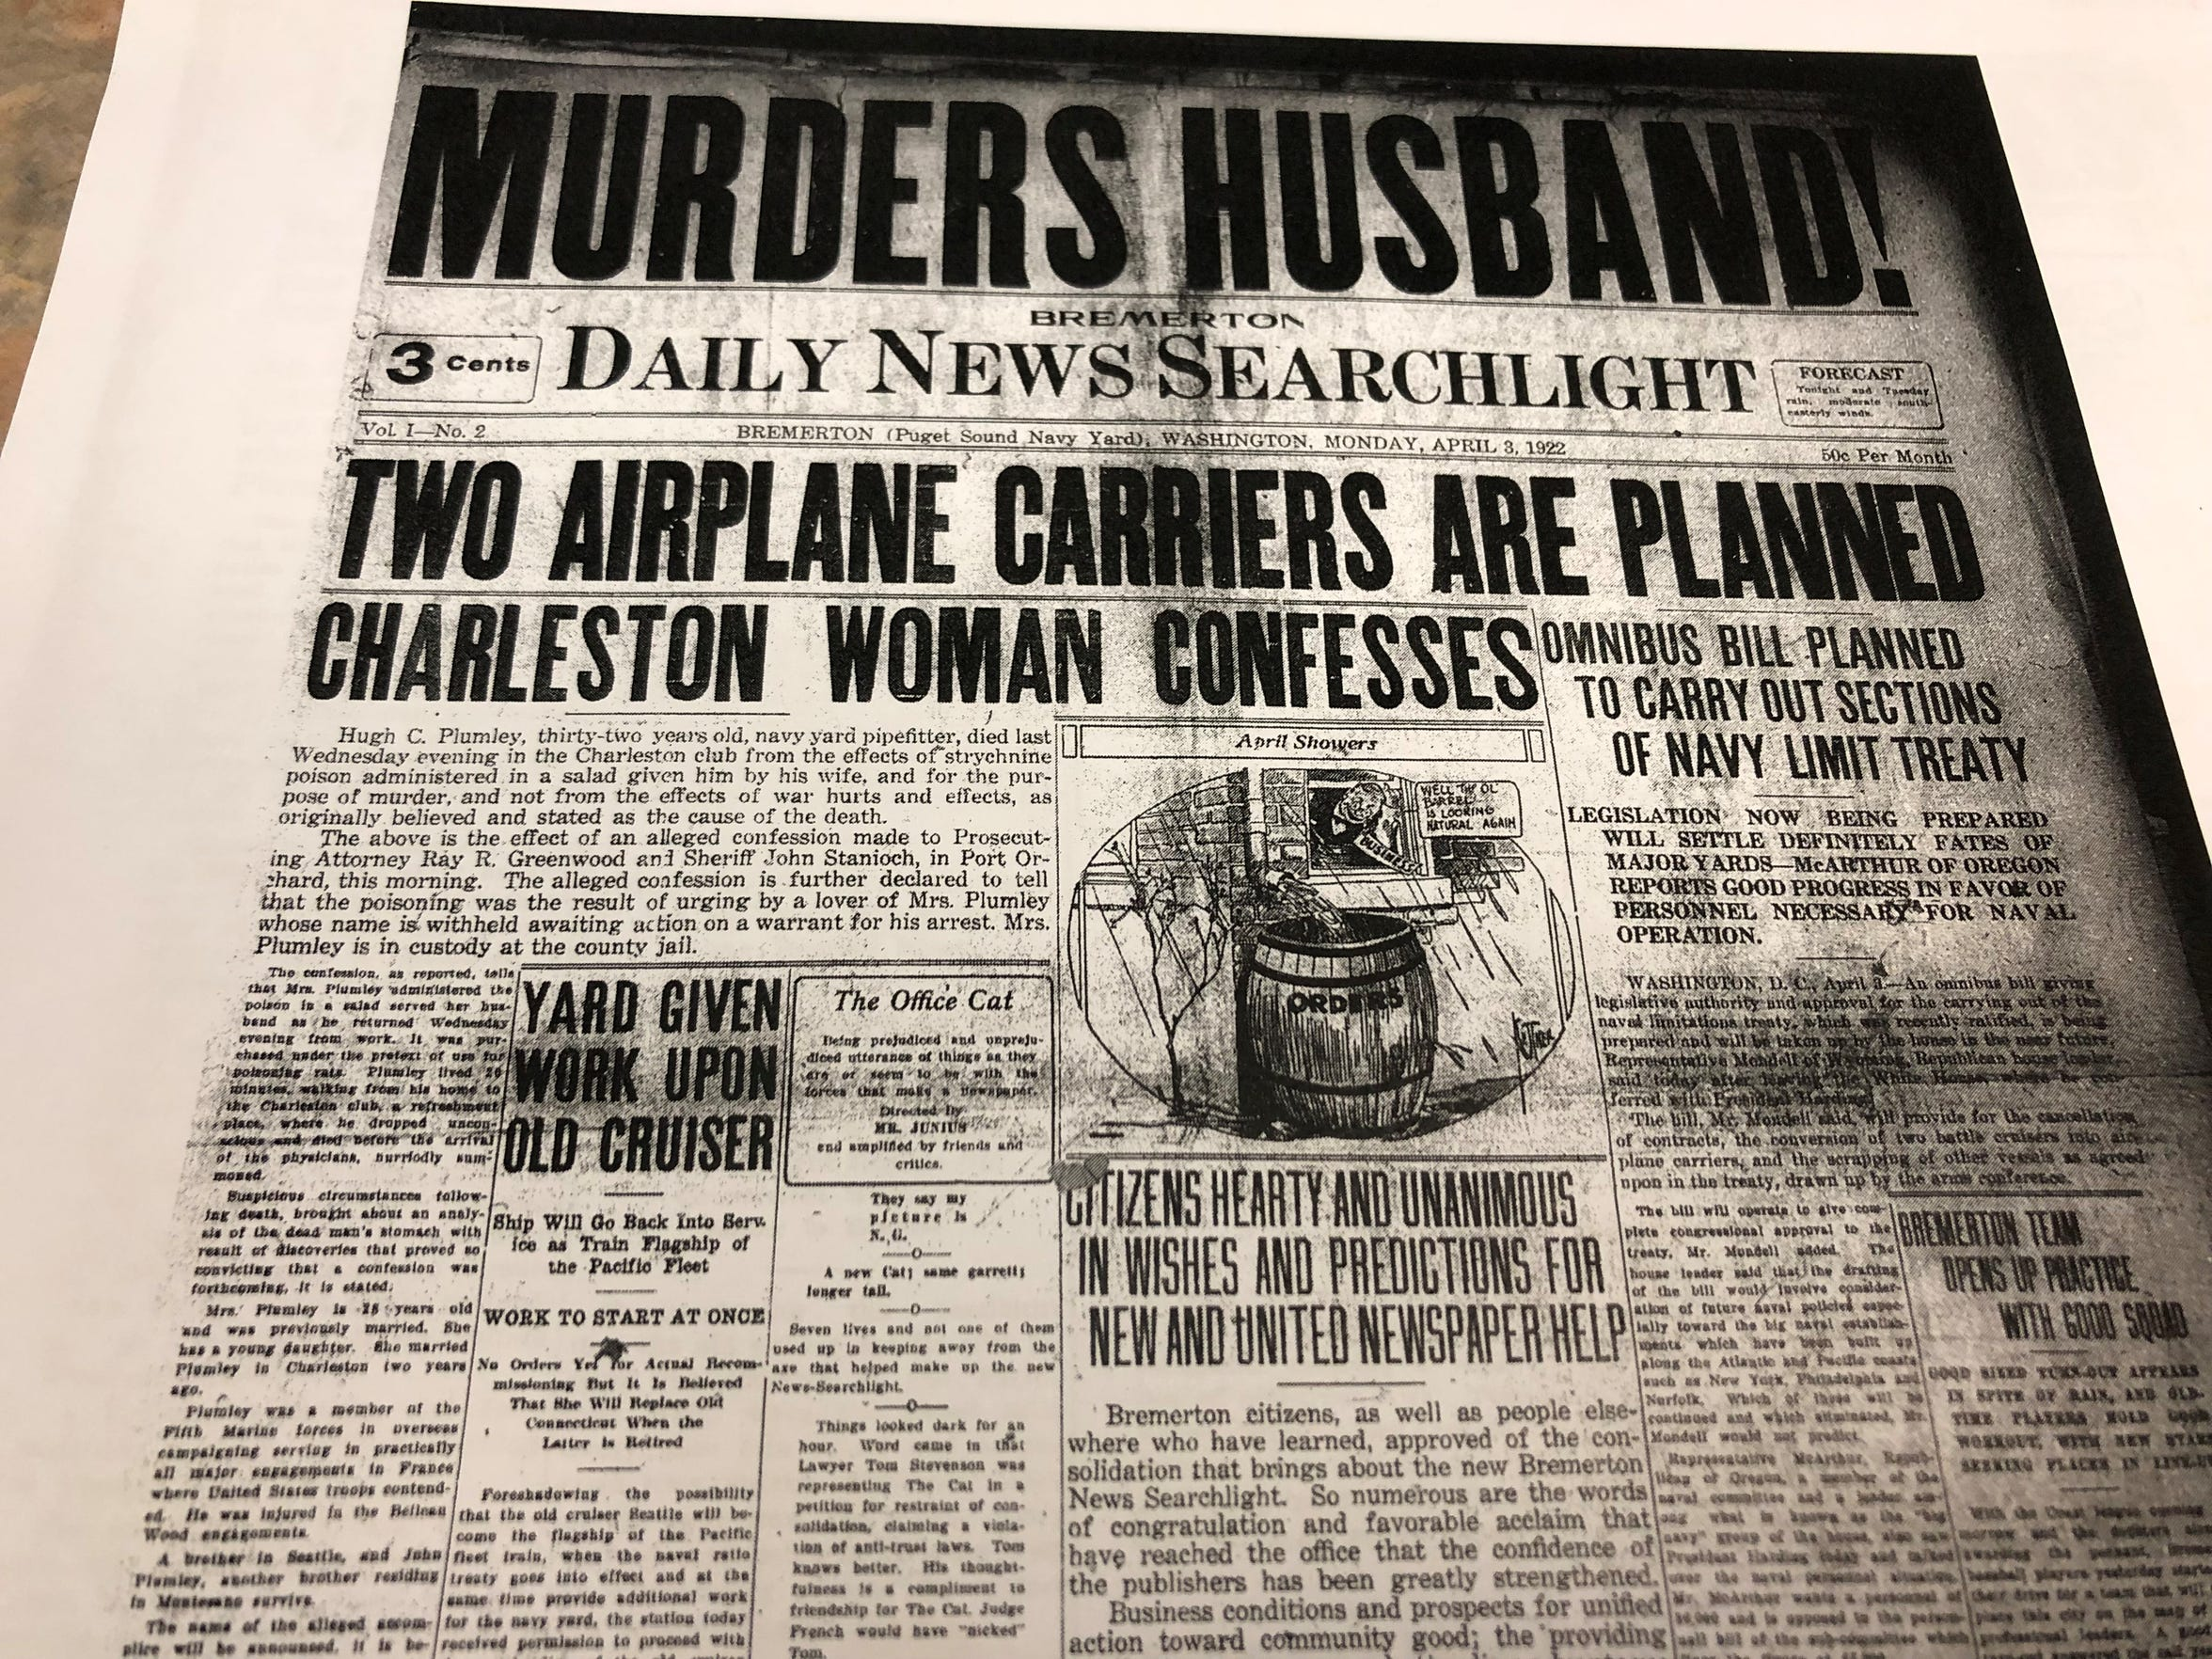 """Murders Husband!"" exclaims the Daily Record Searchlight's coverage of the poisoning death of Hugh Plumlee by his wife."